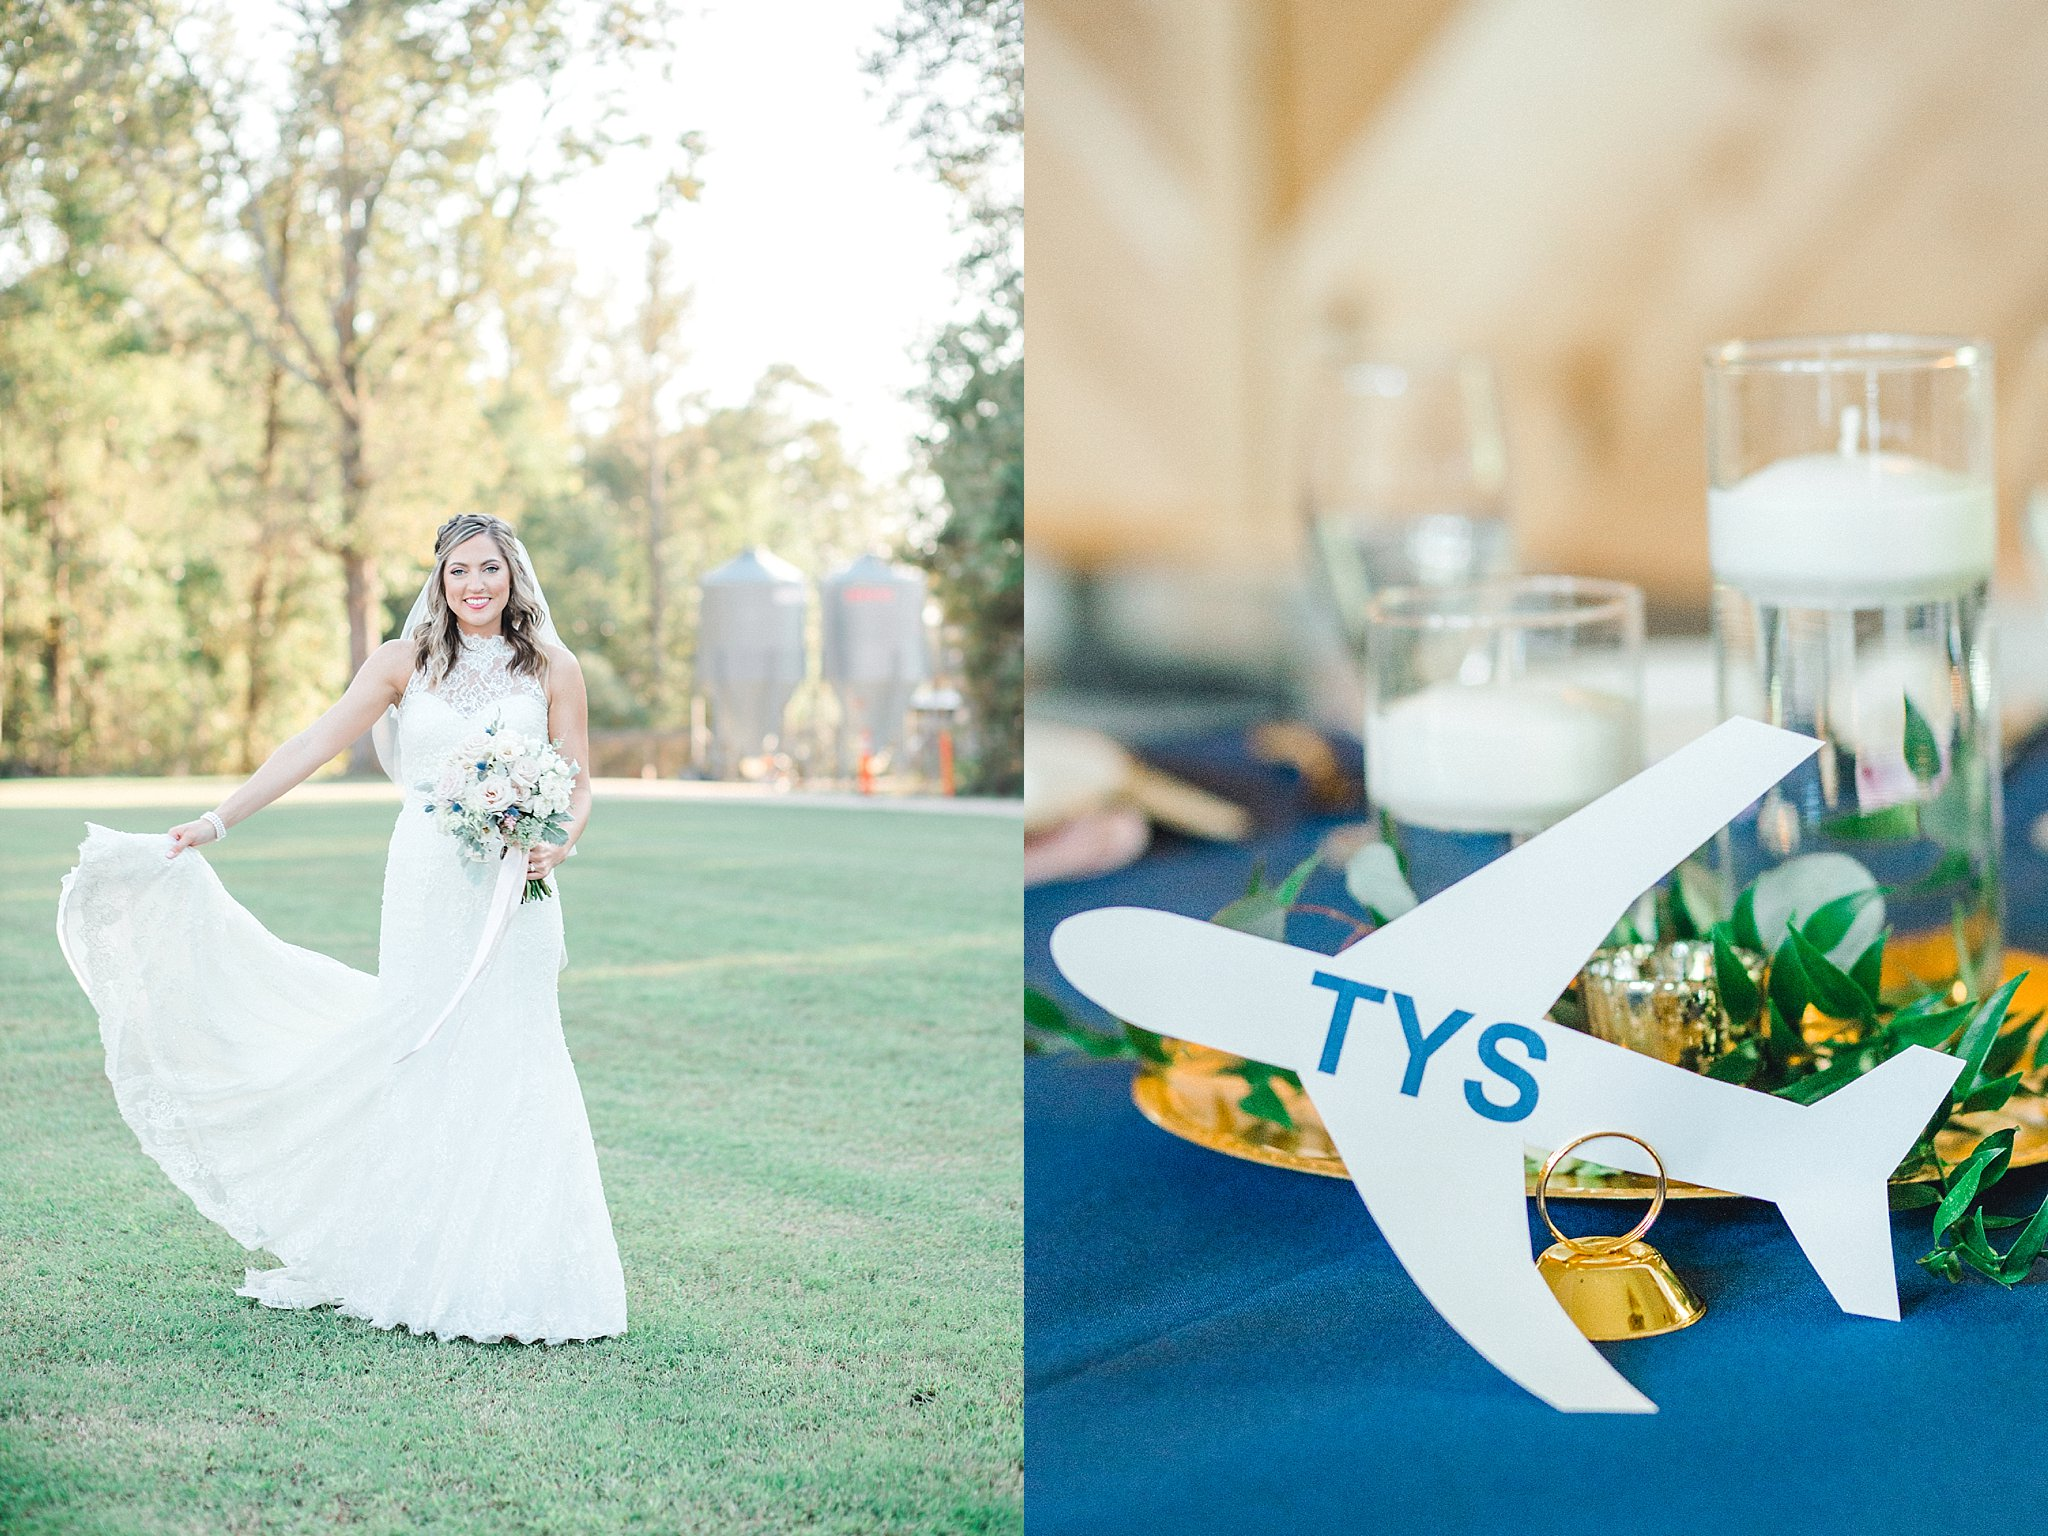 An aviation themed wedding.